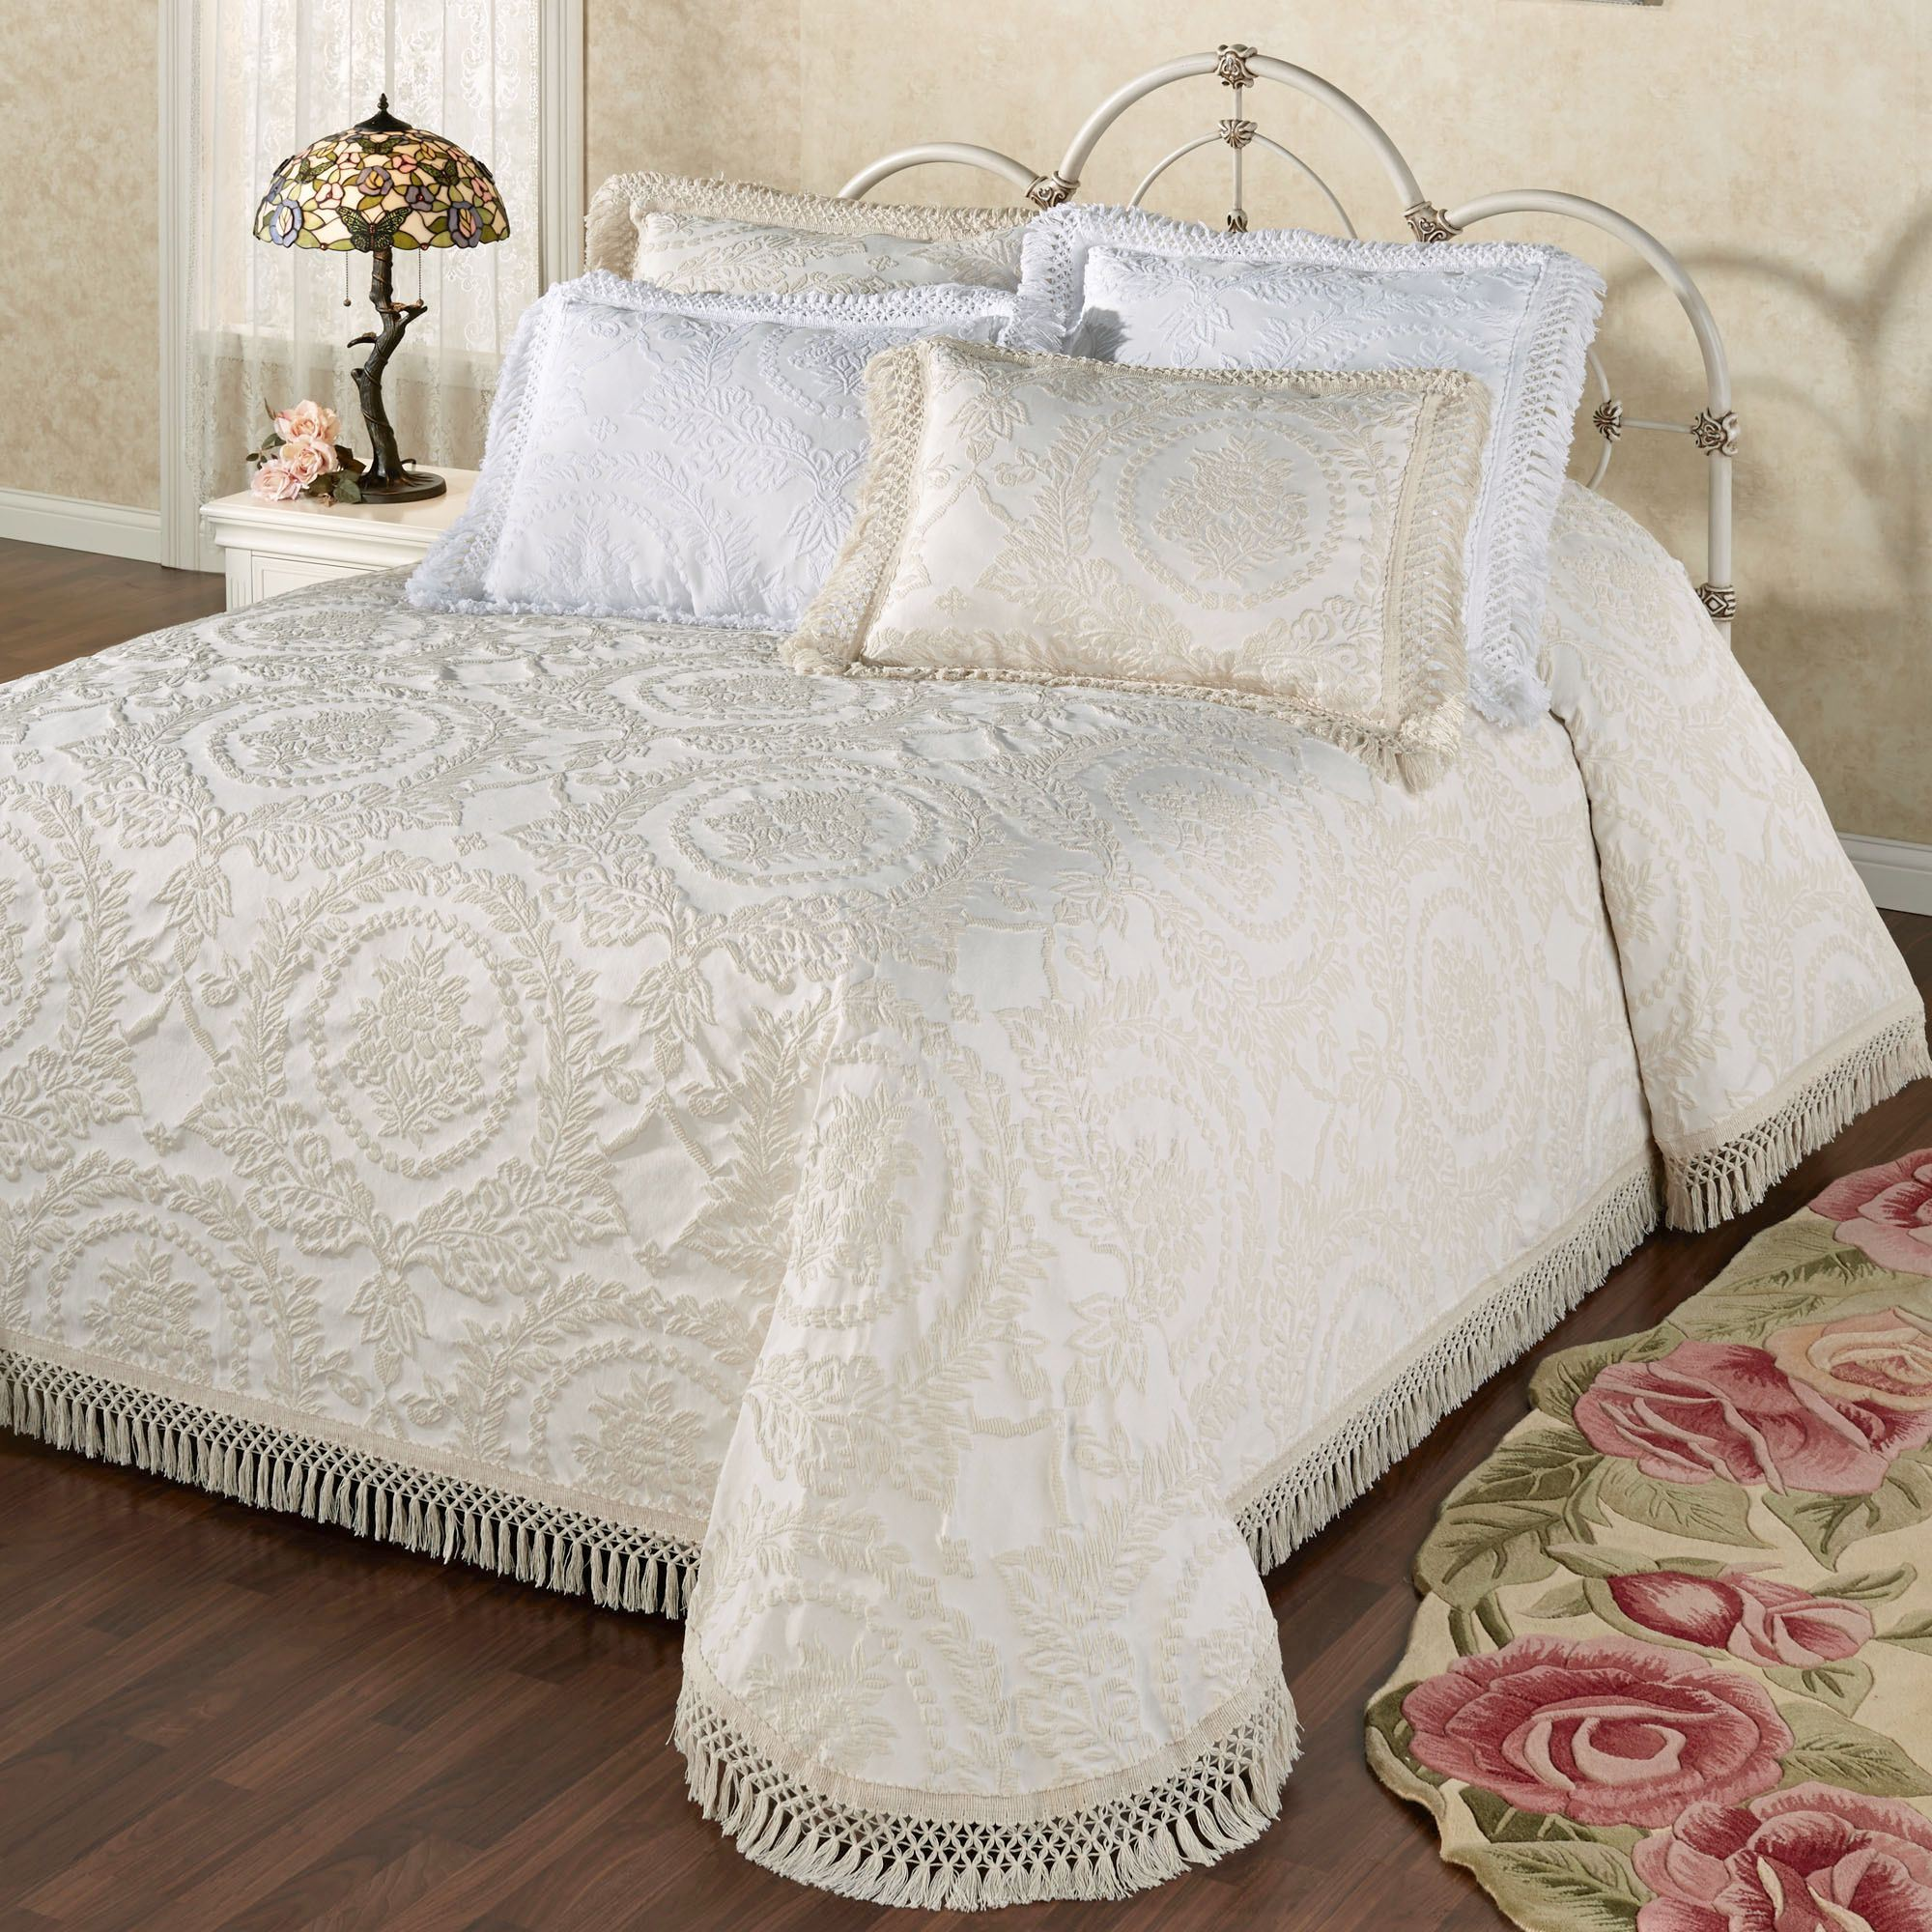 Antique Medallion Matelasse Oversized Bedspread Bedding